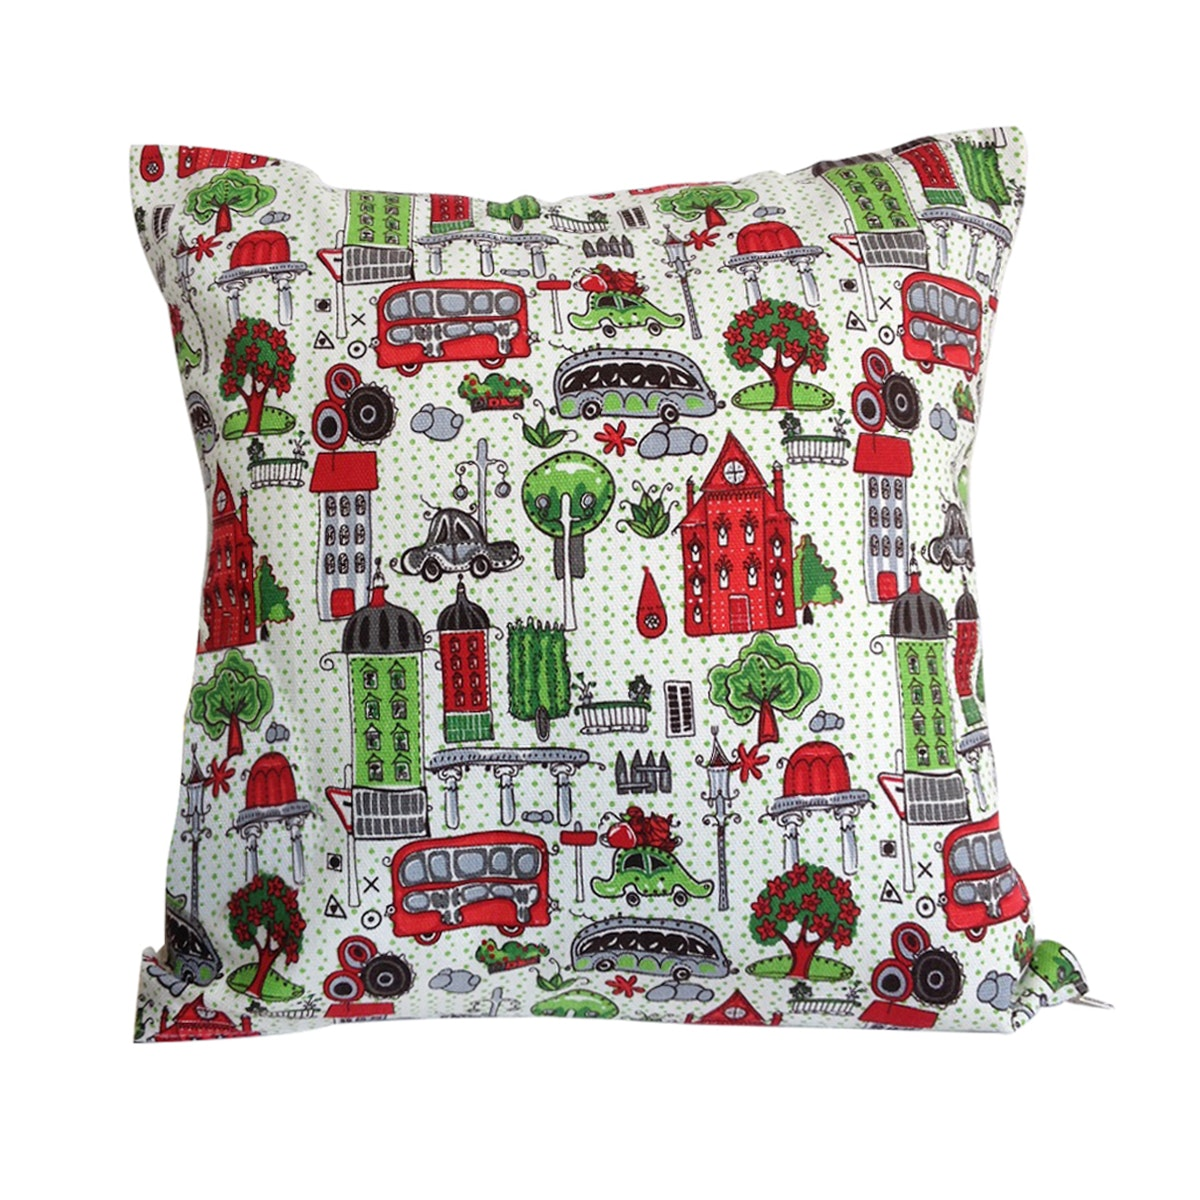 Stiletto Living Sarung Bantal / Cushion Cover - Red House 40x40cm